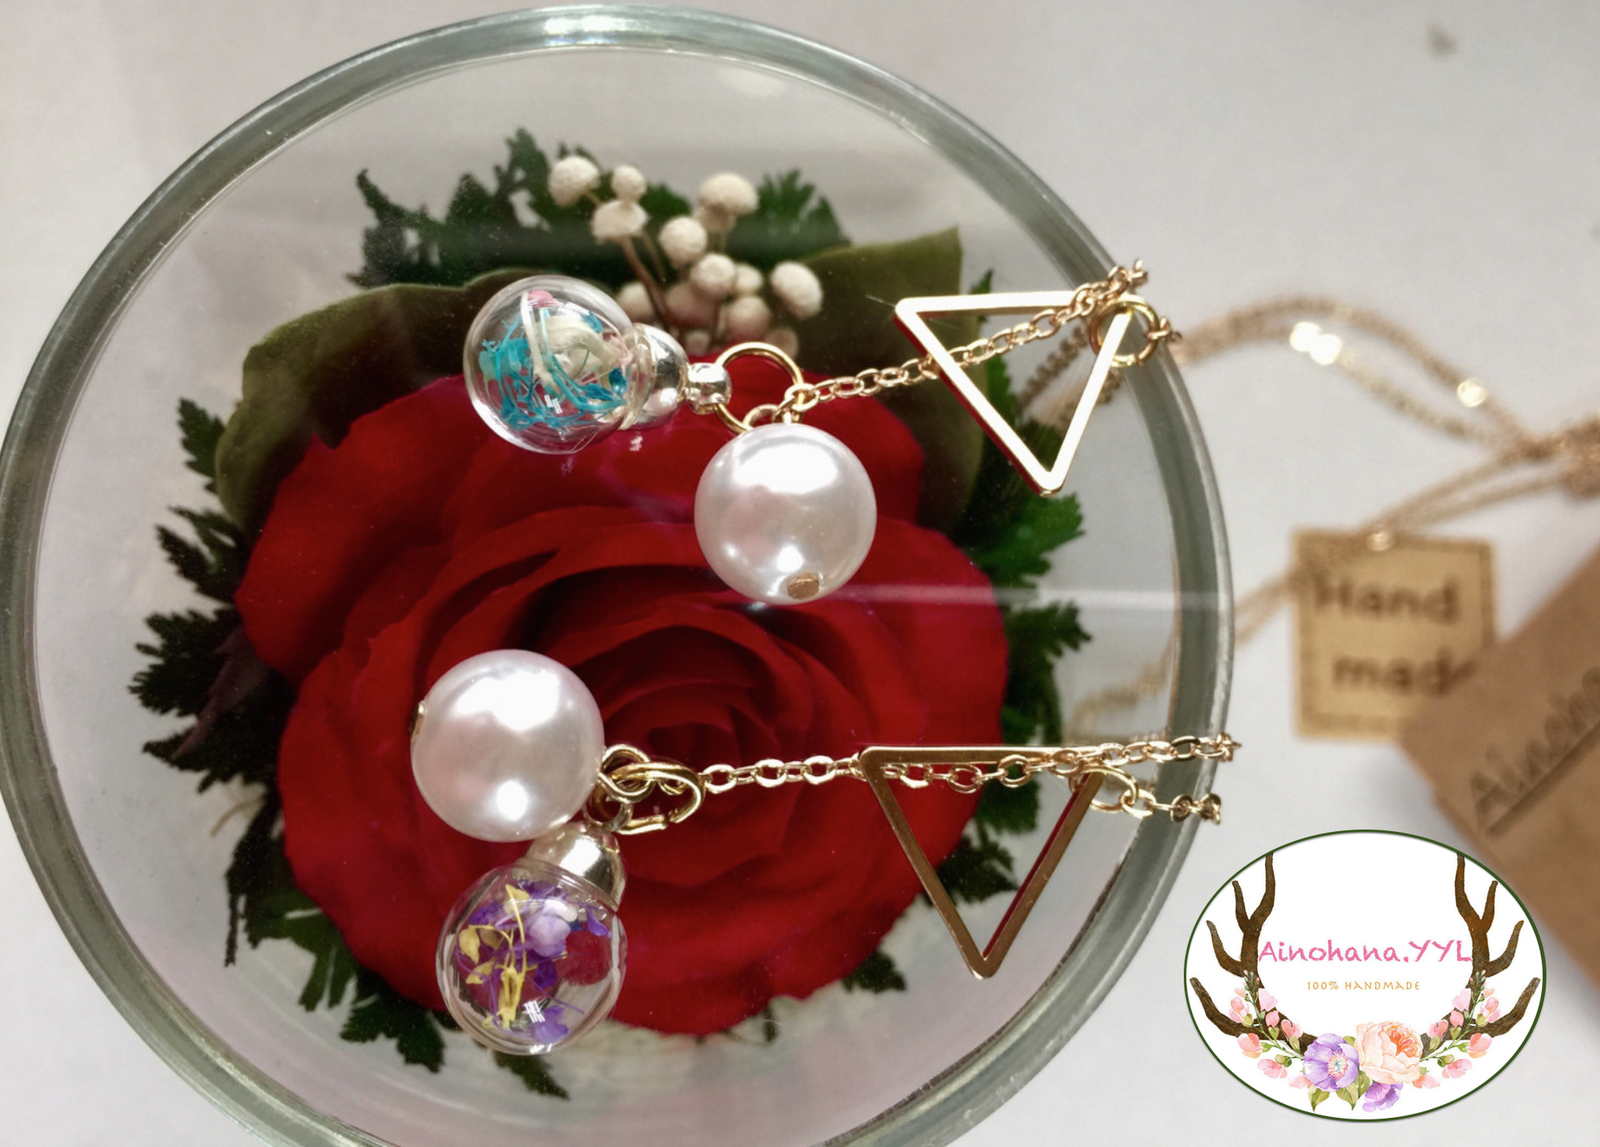 REAL FLOWER NECKLACE AND ACCESSORIES